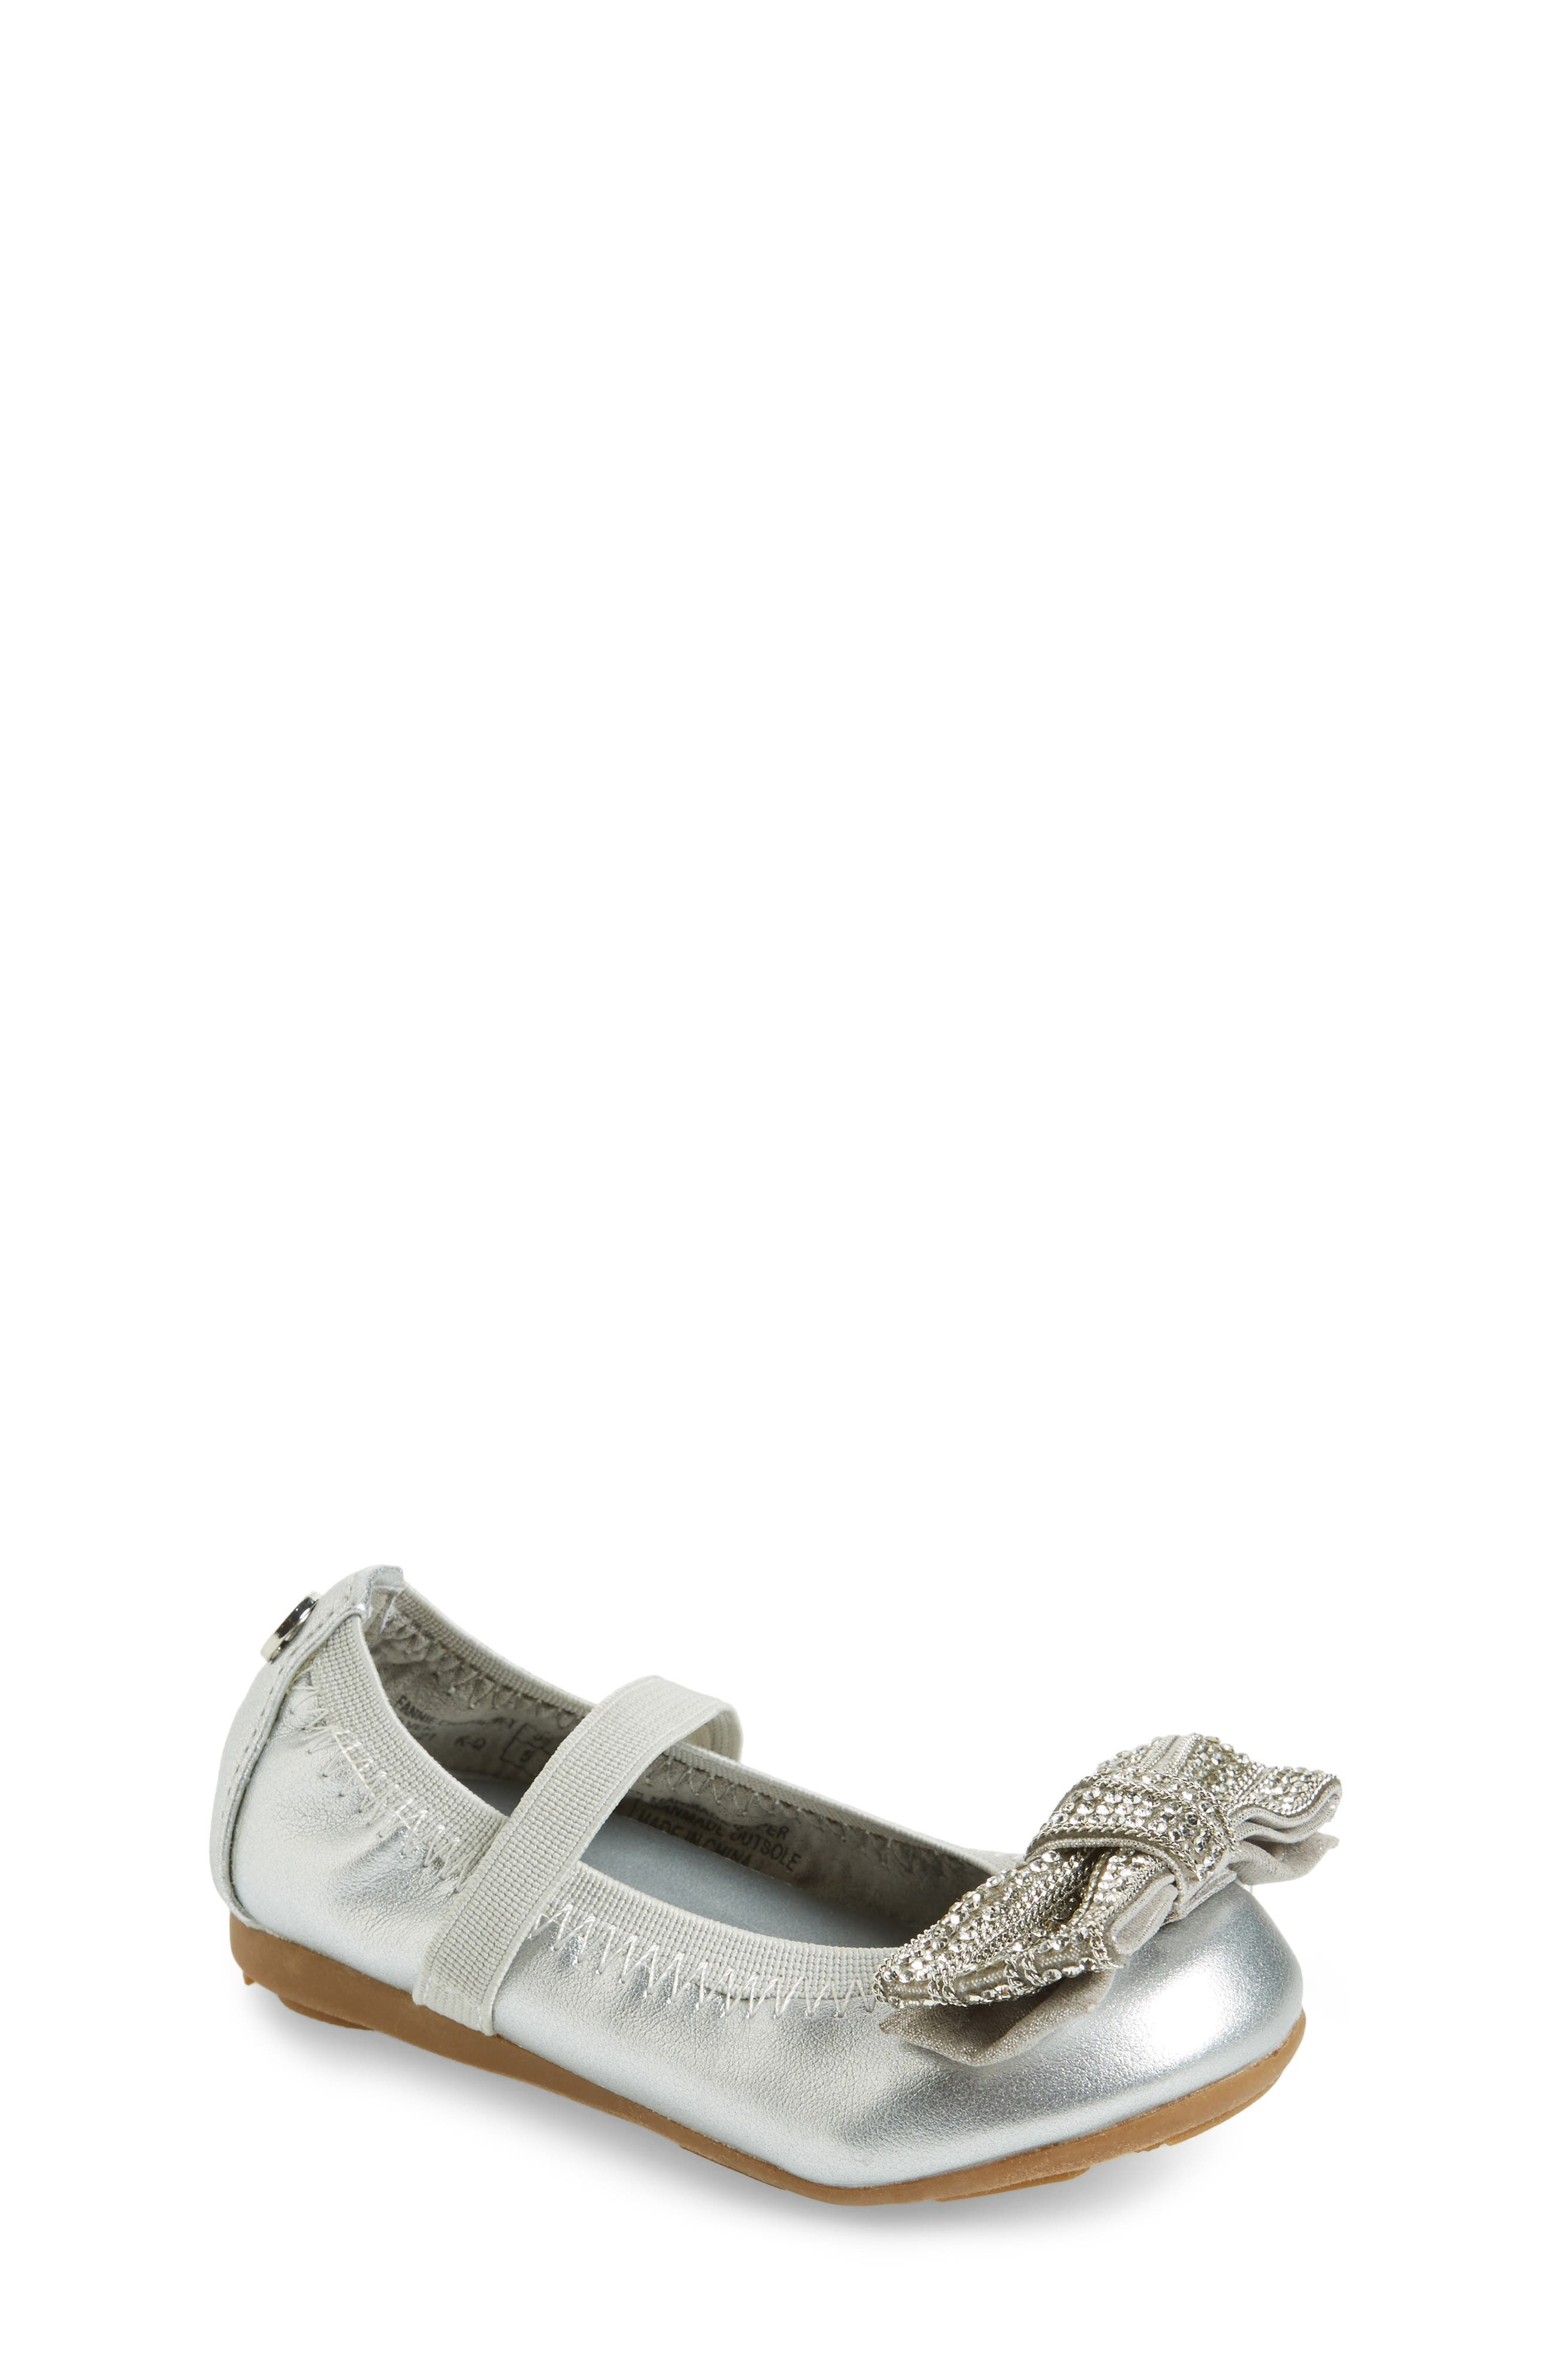 Fannie Embellished Bow Mary Jane Flat,                         Main,                         color,